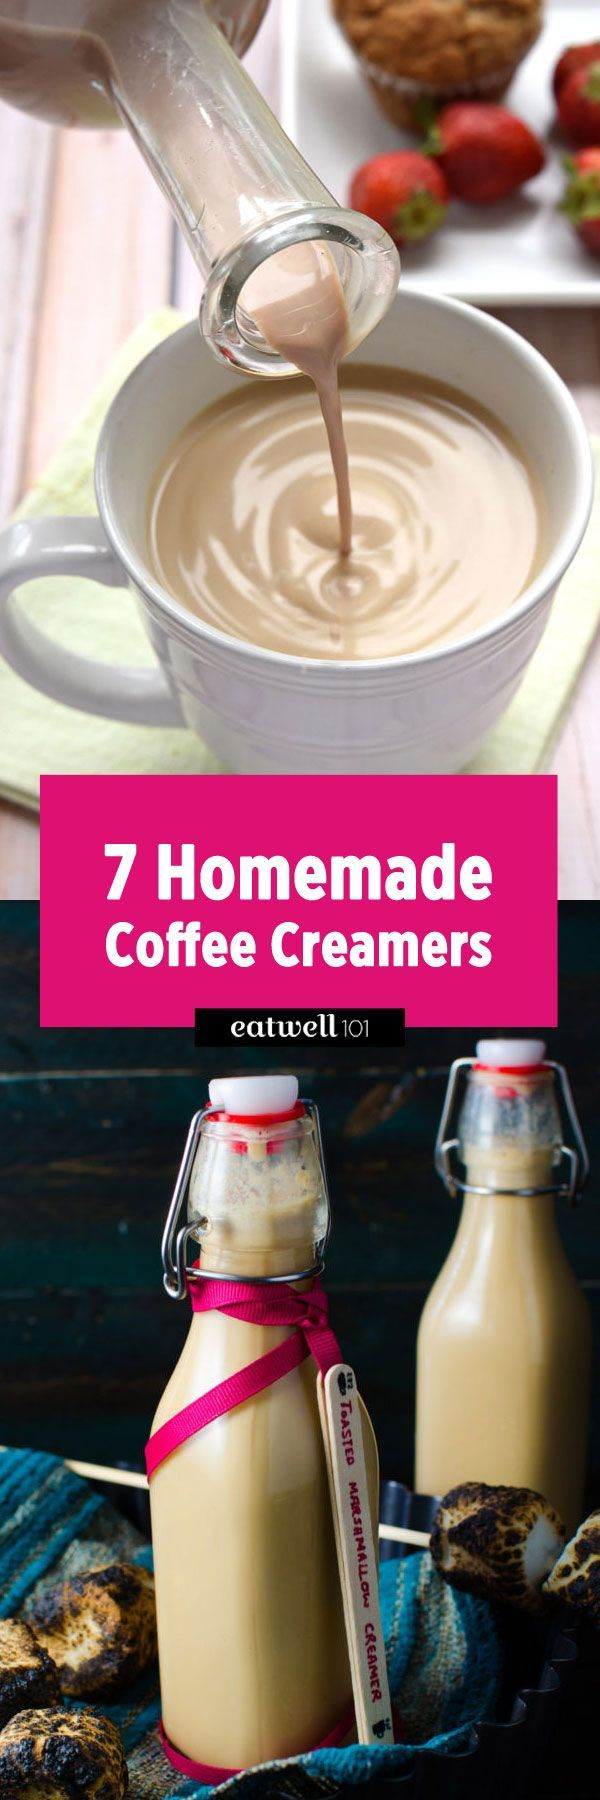 Check these homemade coffee creamer recipes and be your own barista today!